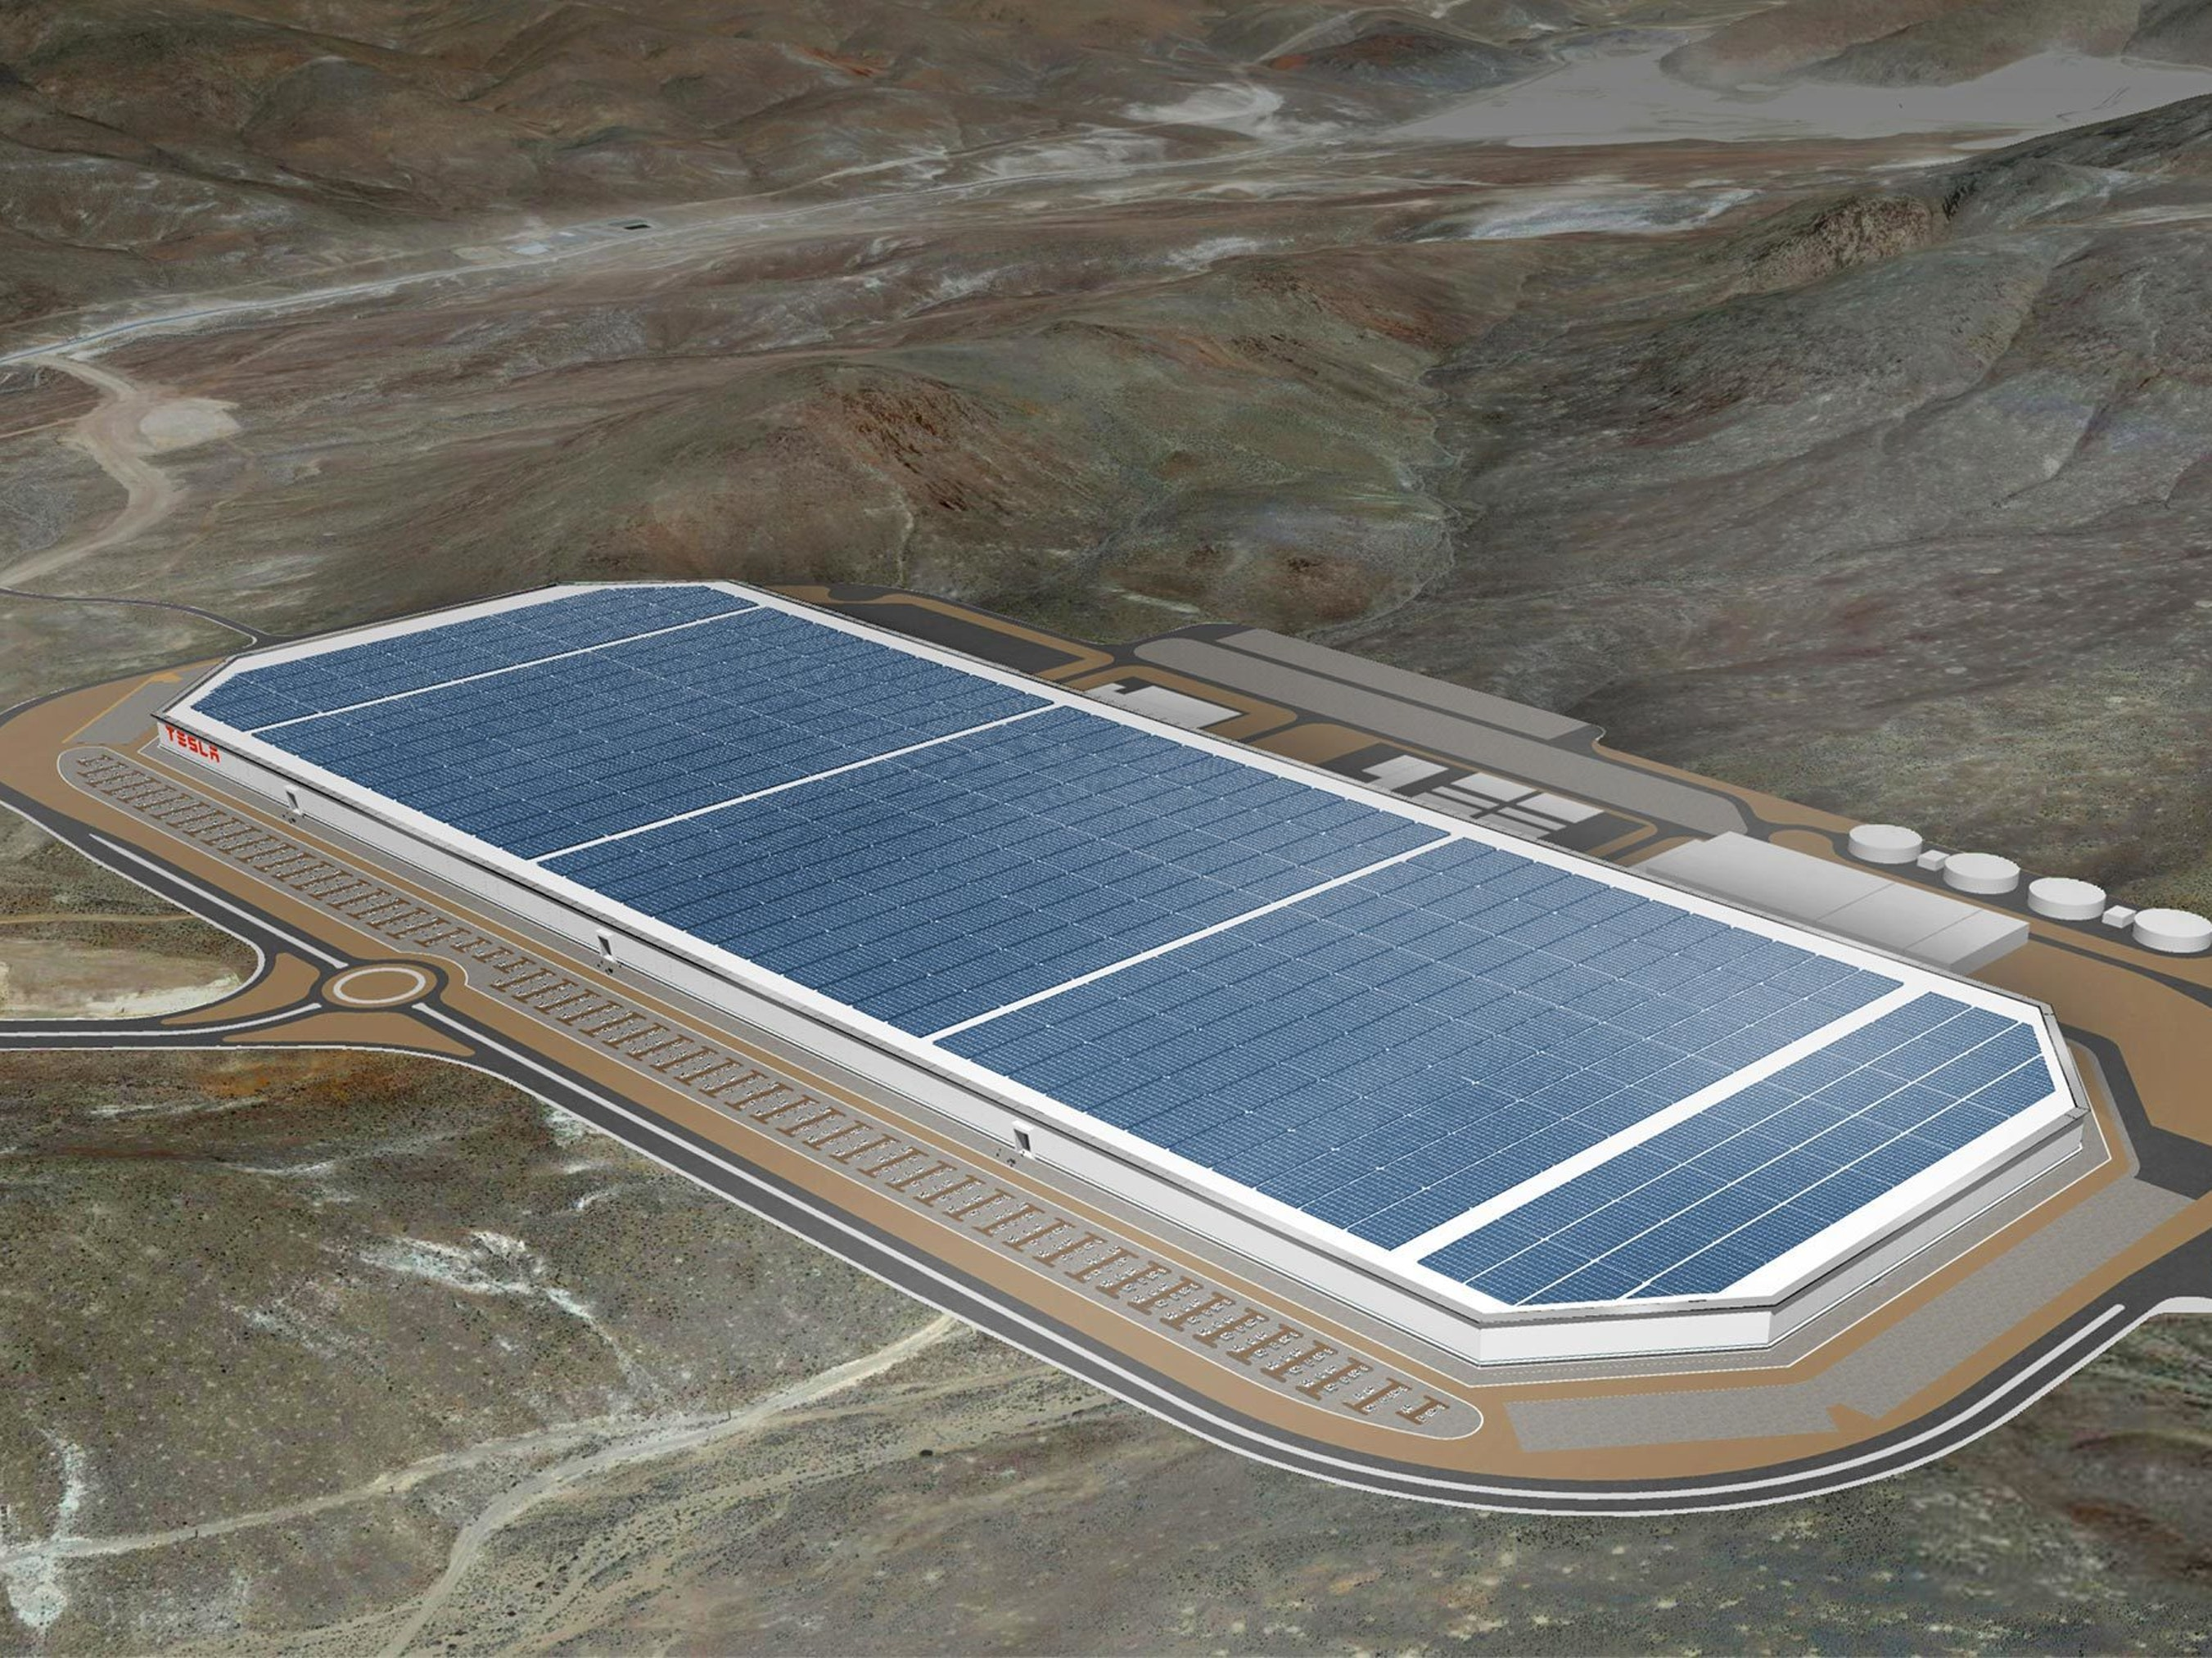 A rendering of the finished Gigafactory: Mind-bogglingly immense, and adorned with solar panels.